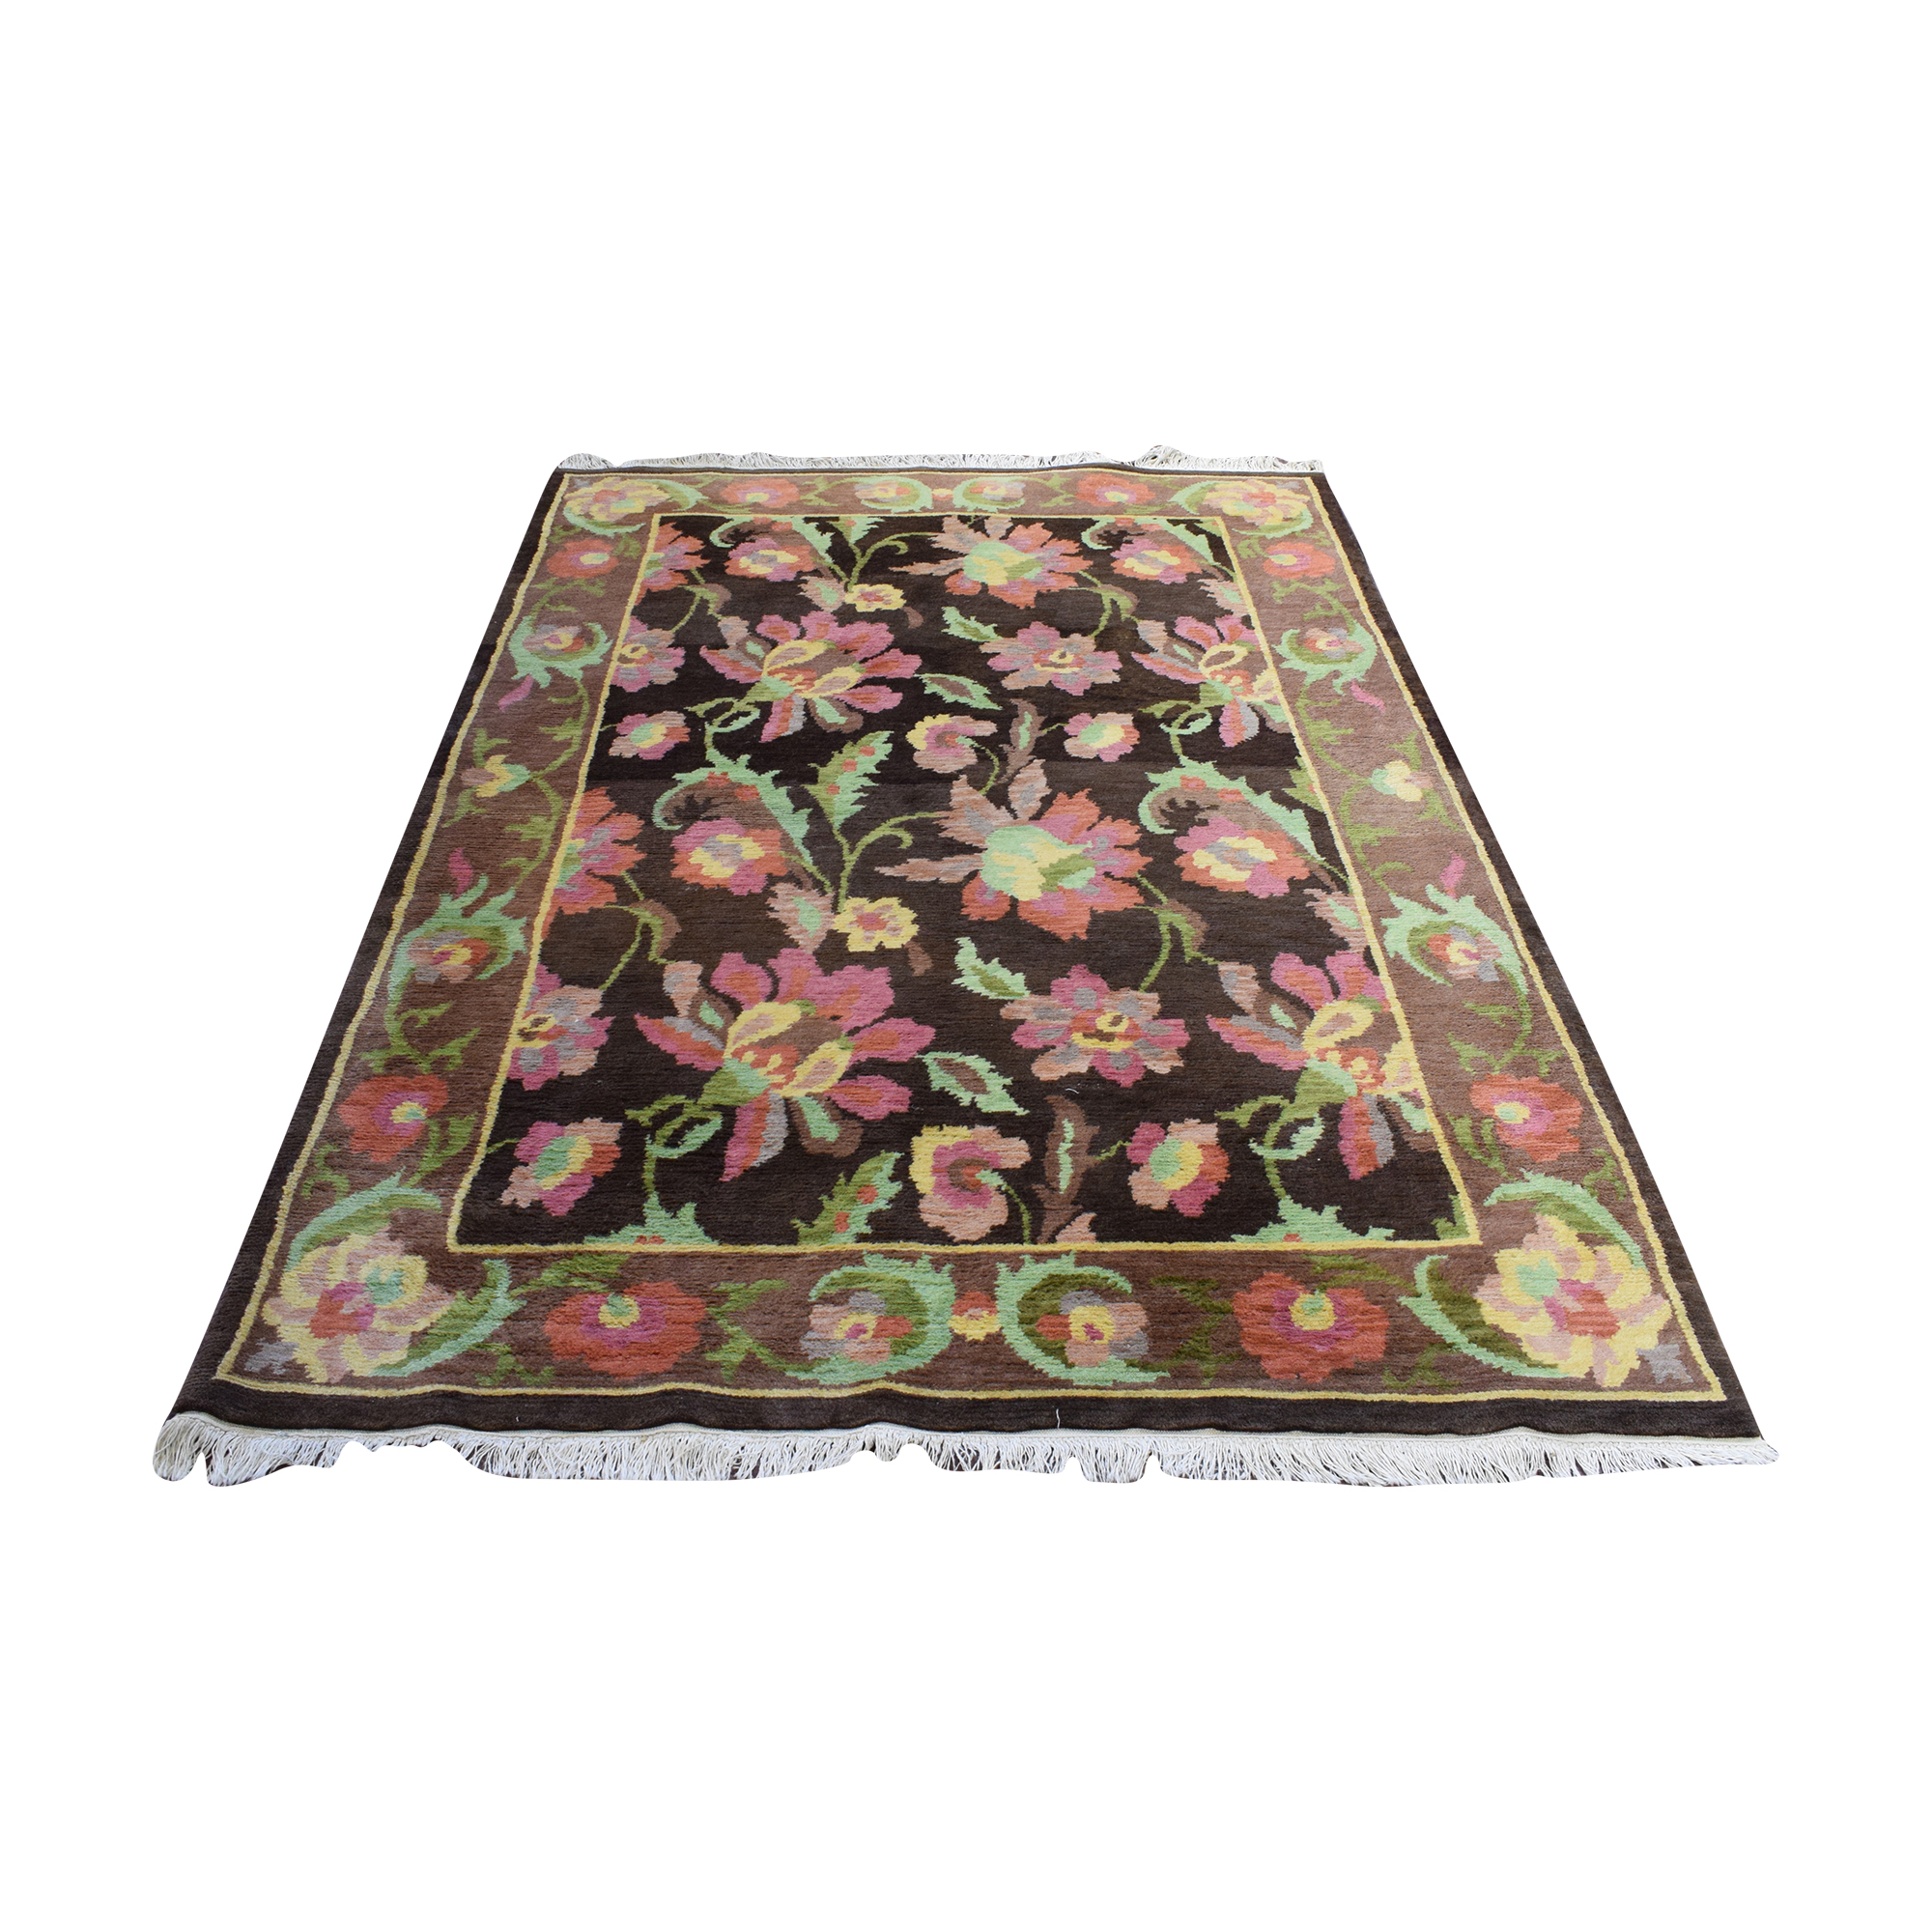 Floral Pattern Area Rug sale